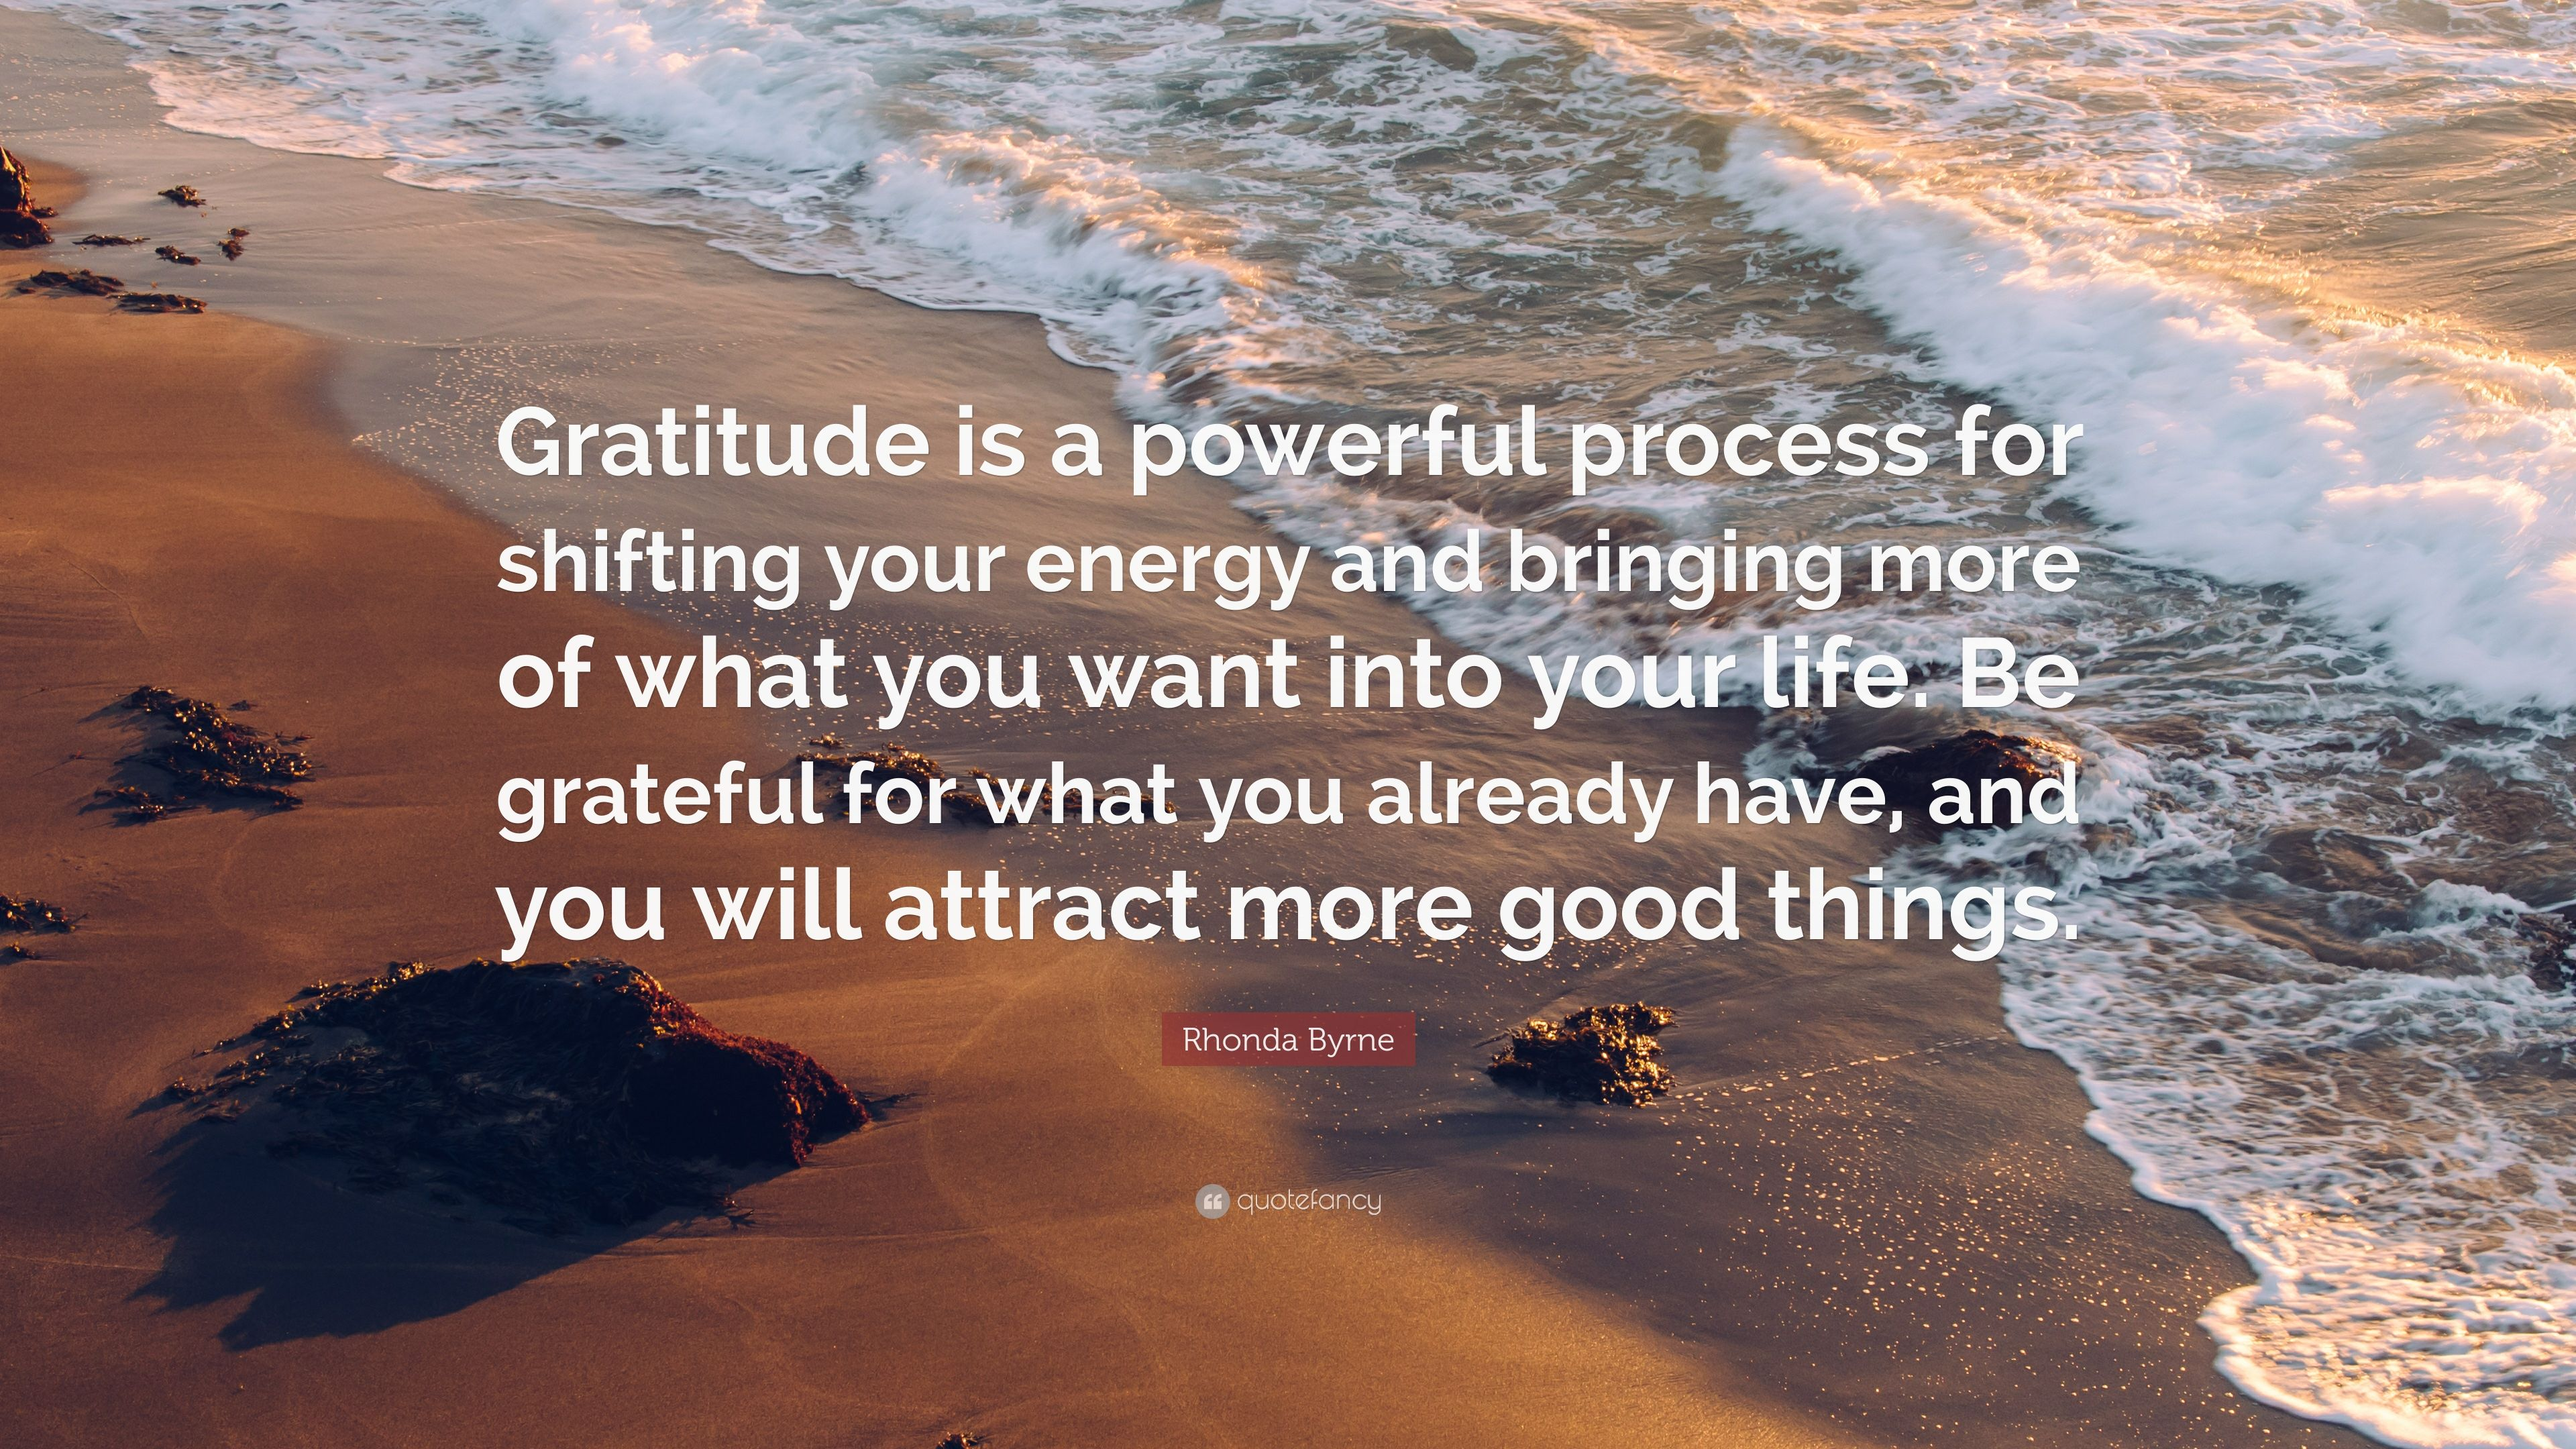 Elegant Rhonda Byrne Quote: U201cGratitude Is A Powerful Process For Shifting Your  Energy And Bringing